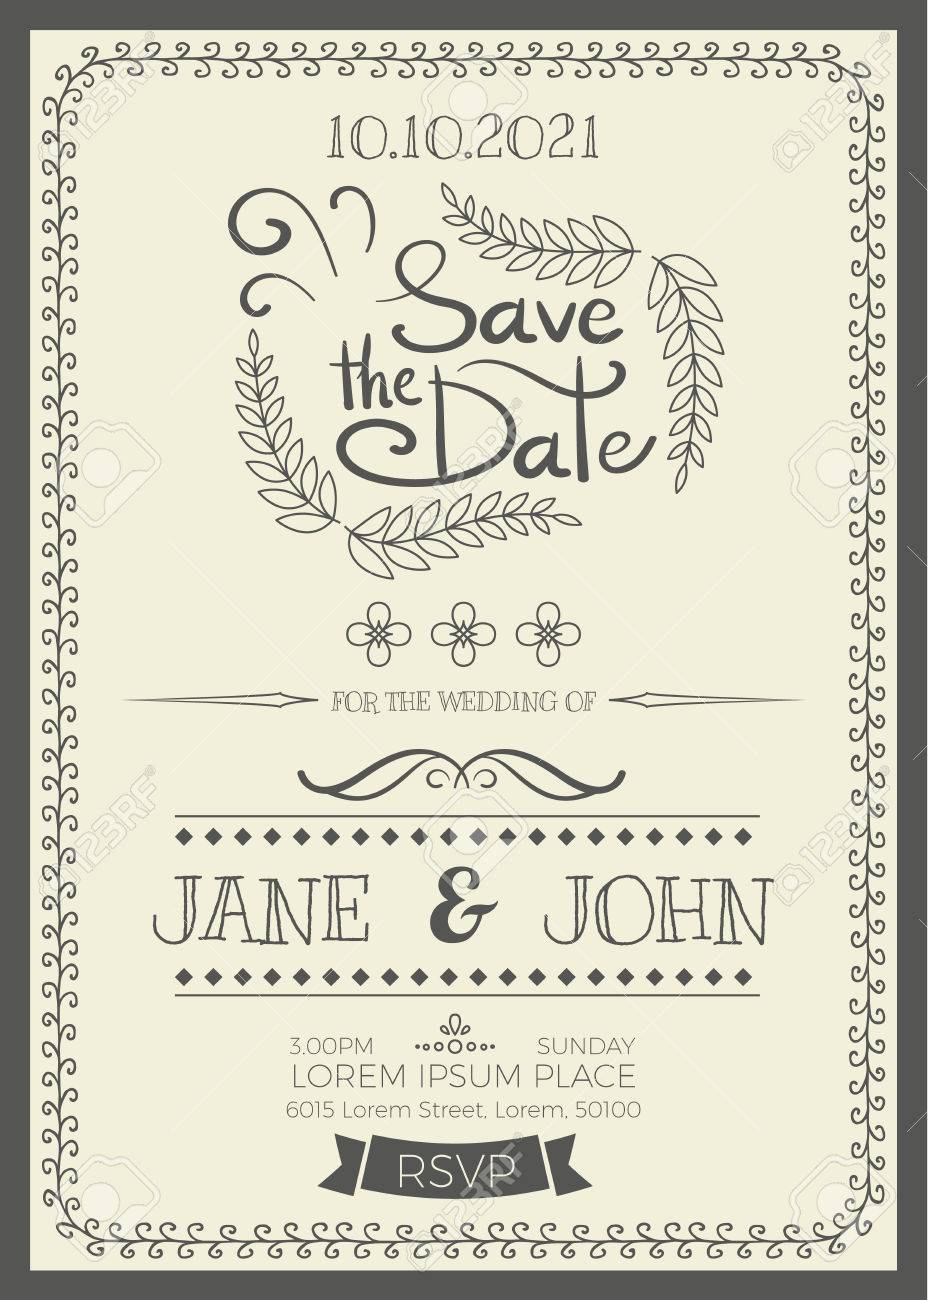 Vintage wedding invitation card a5 size frame layout template vector vintage wedding invitation card a5 size frame layout template stopboris Choice Image